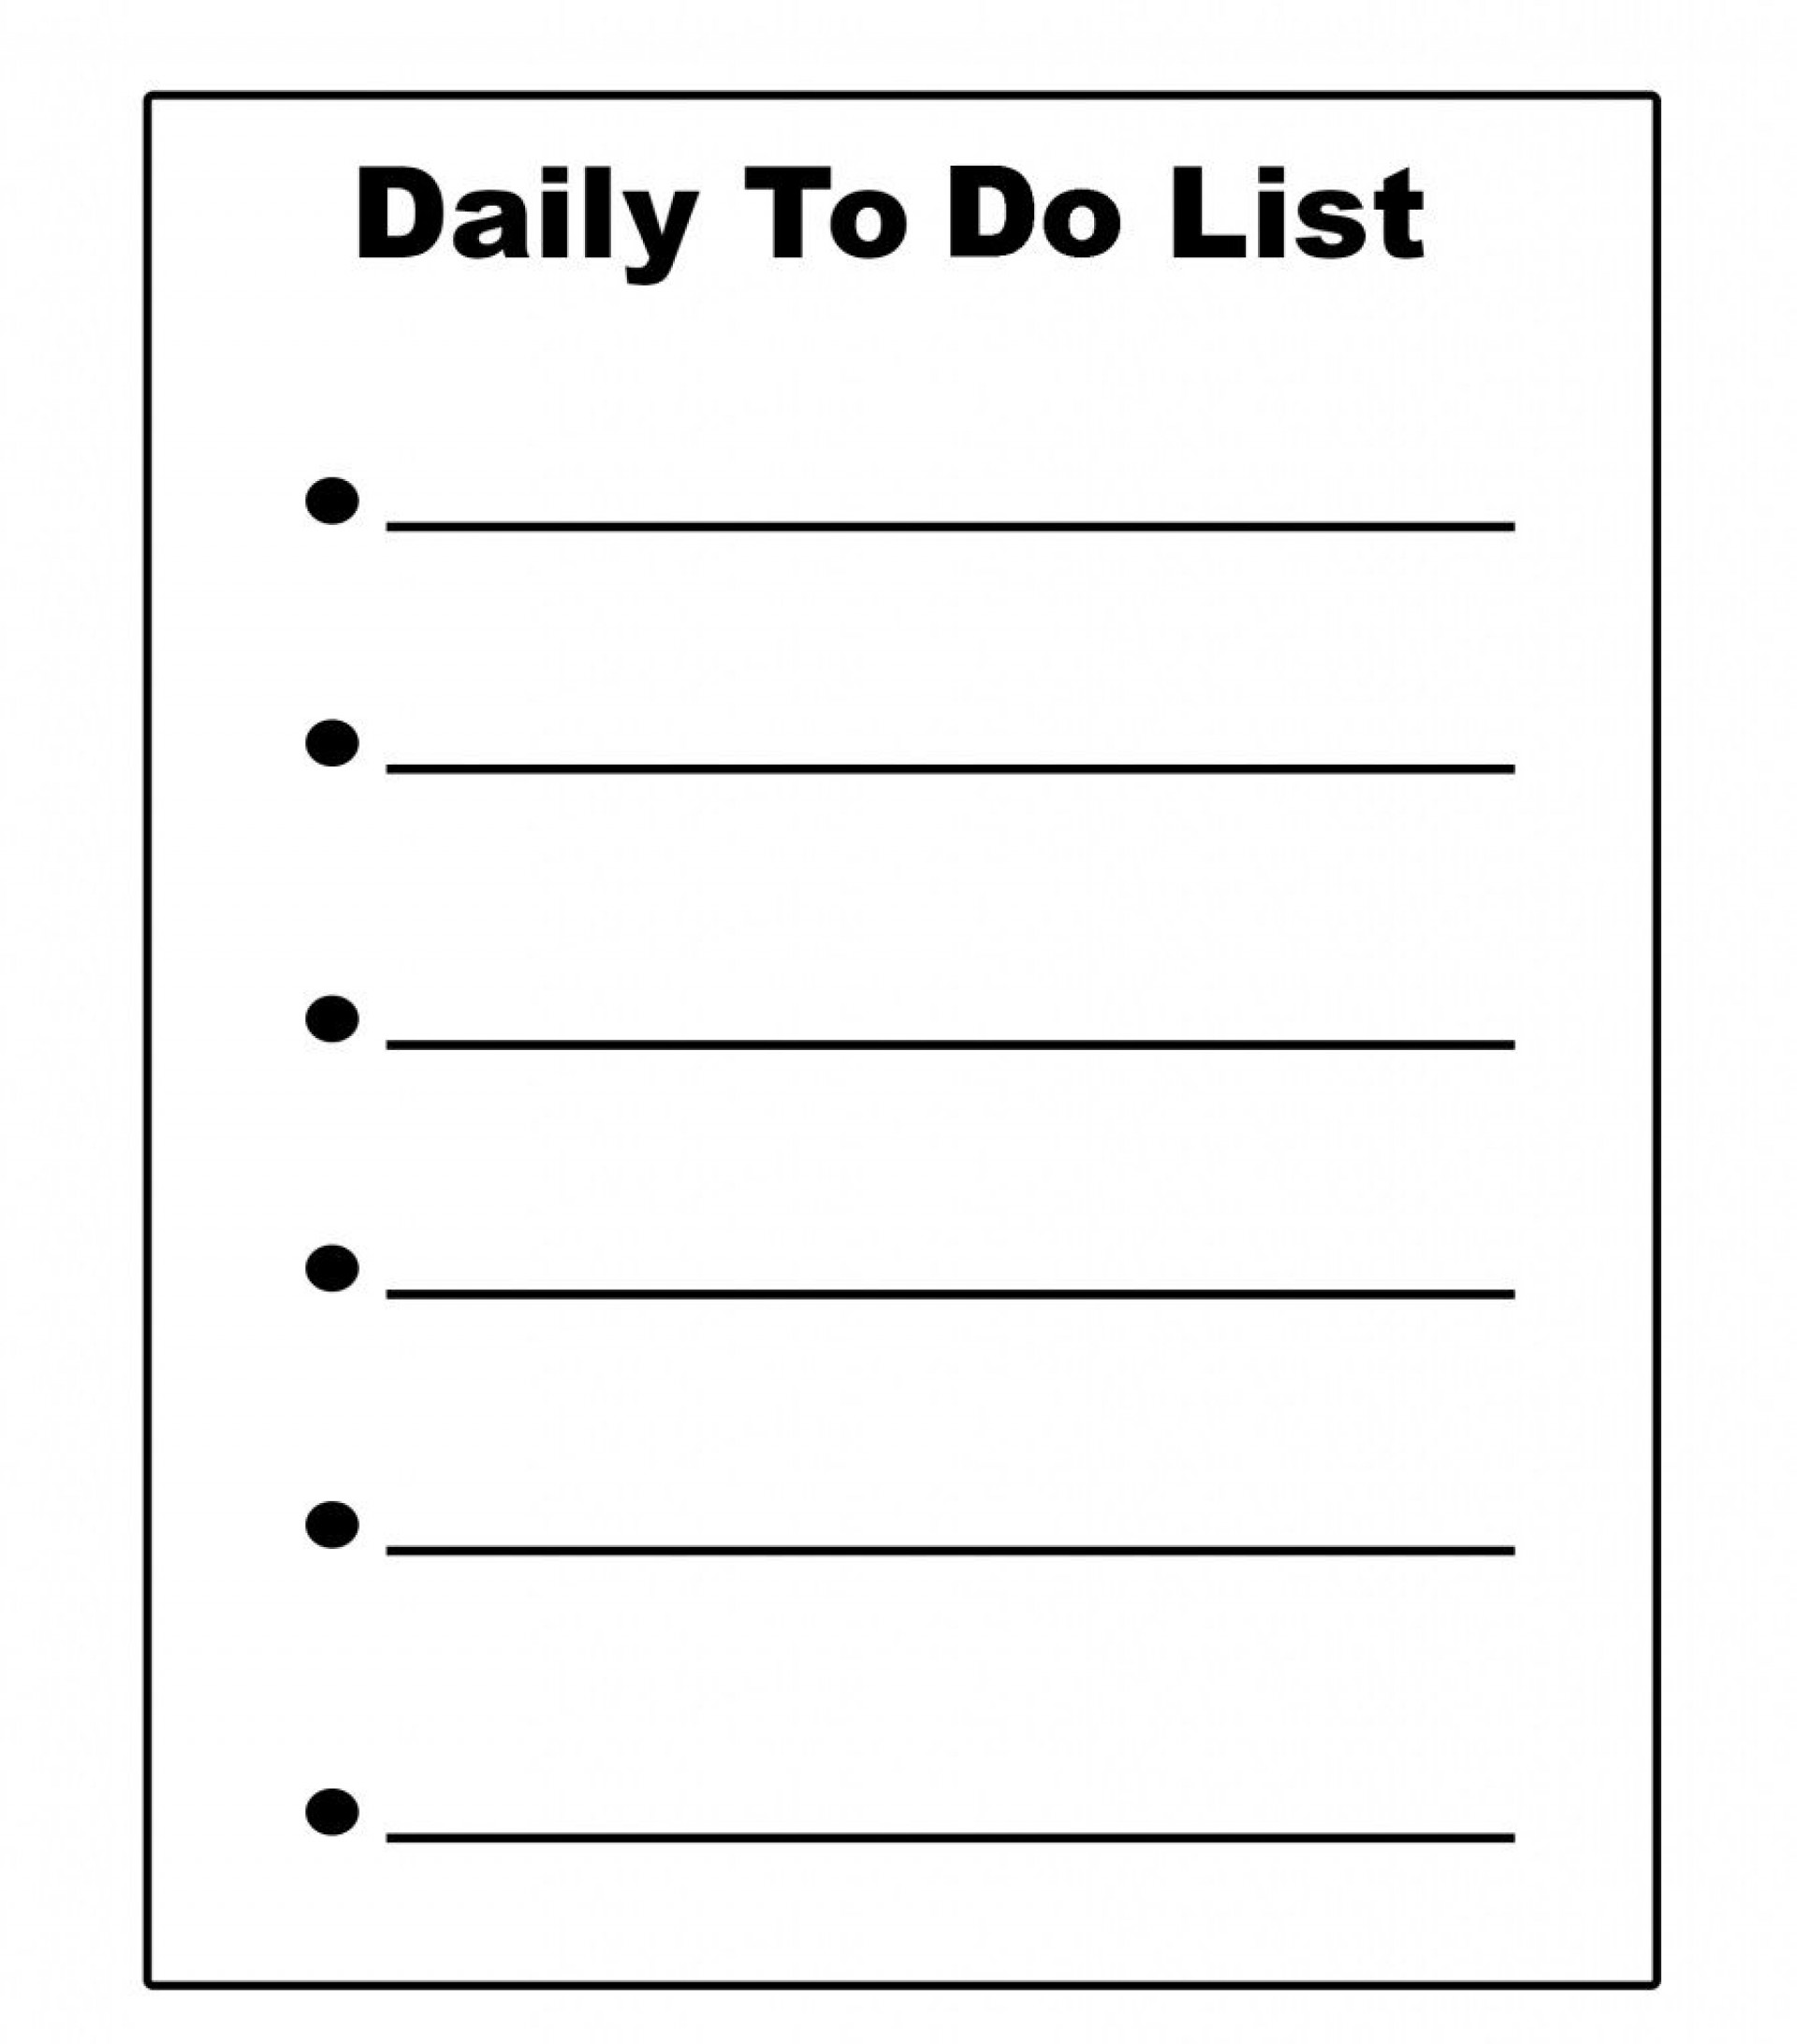 009 Unforgettable Daily To Do List Template Concept  Templates Free1920